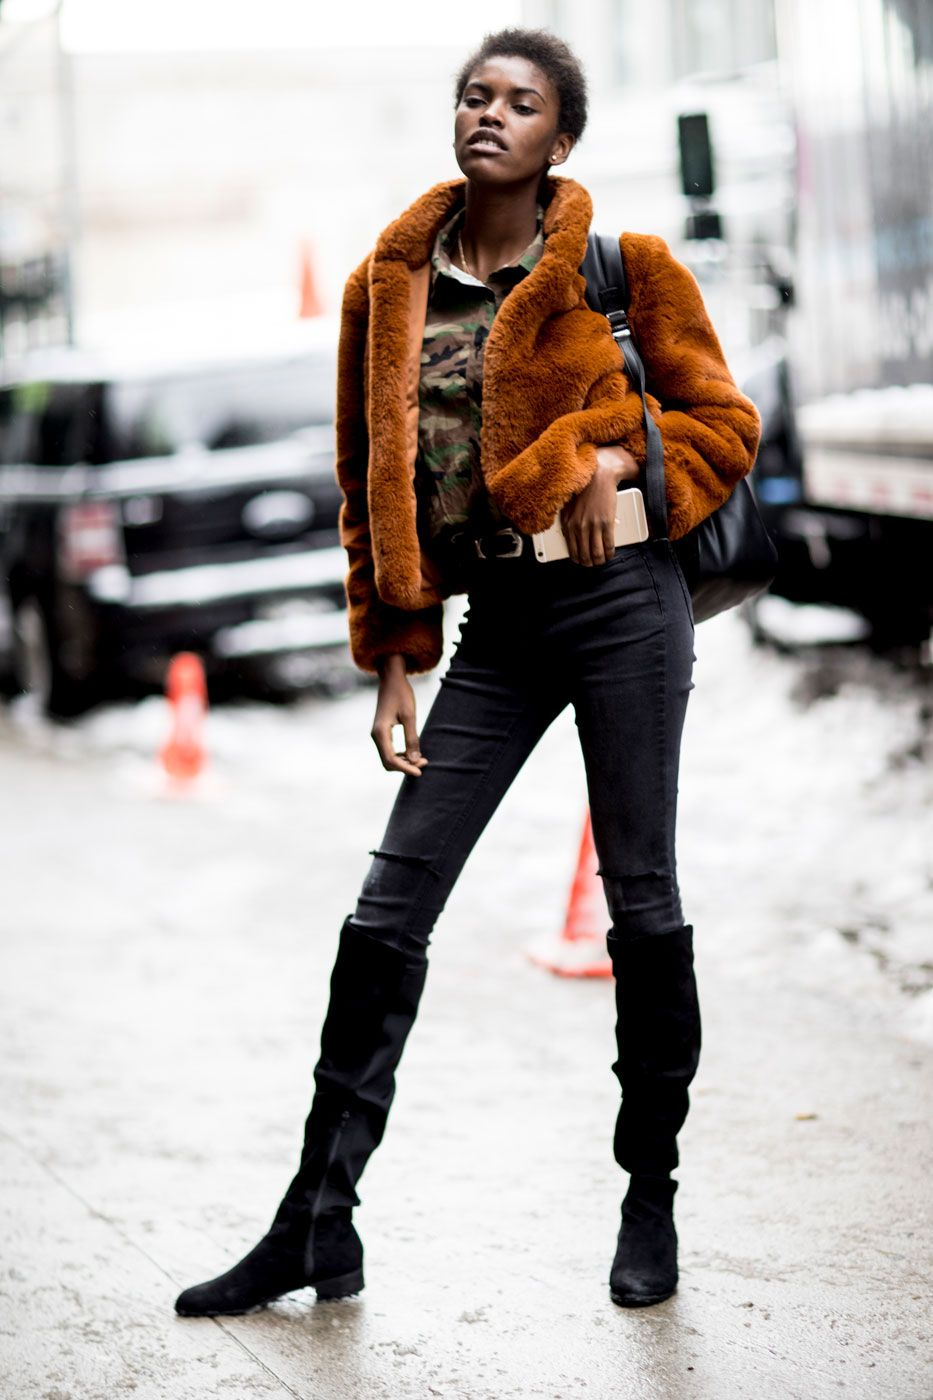 61527db1d851 25+ Winter Street Style Outfits To Keep You Stylish and Warm #winterfashion  #streetstyle #ootd #outfits